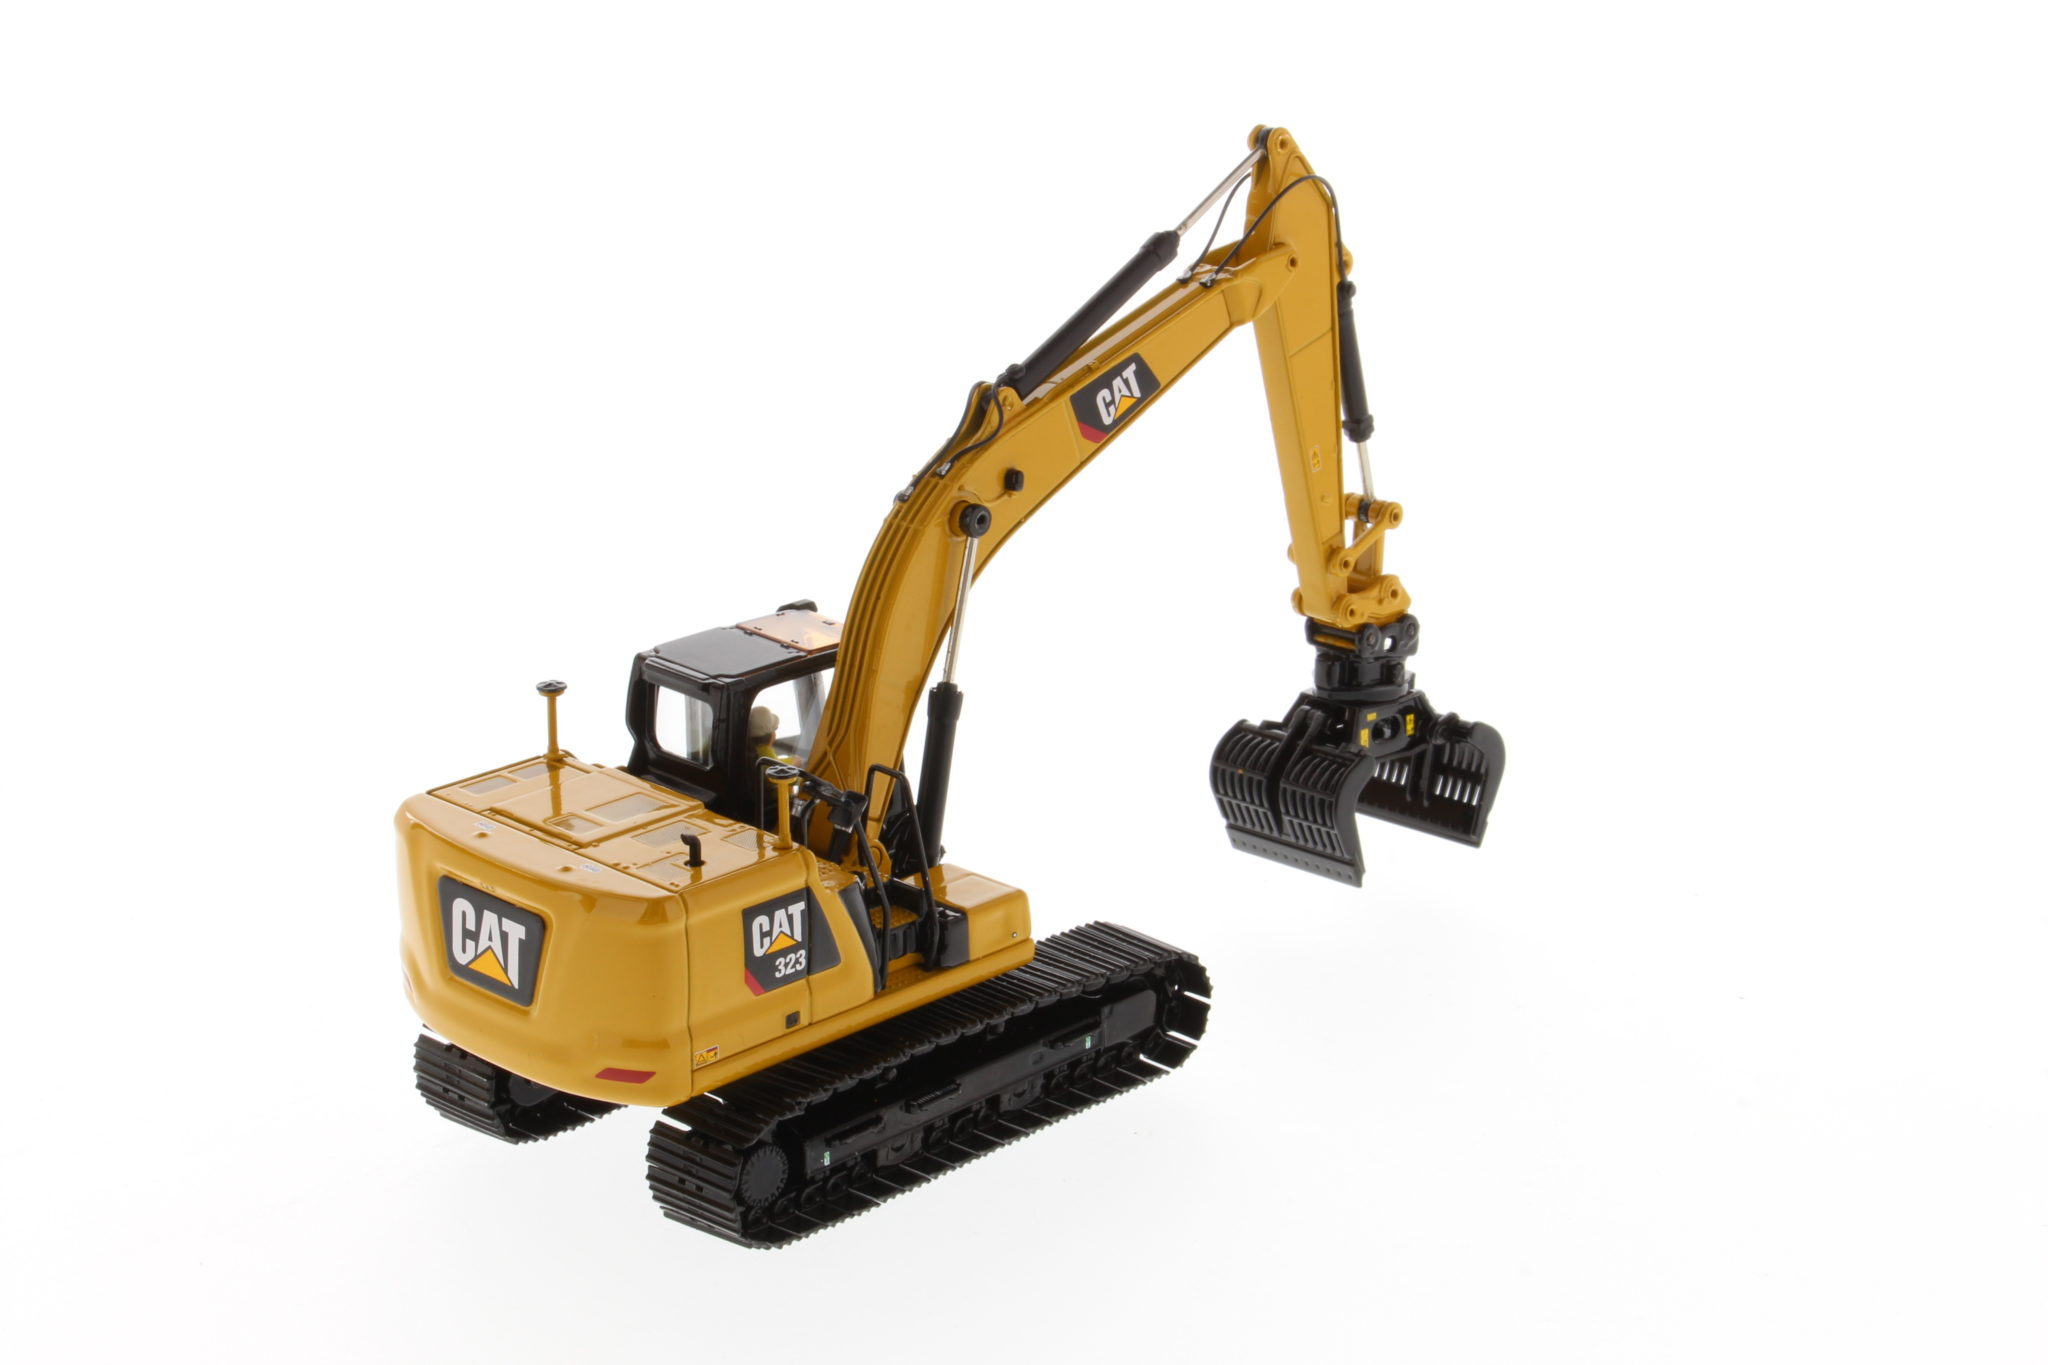 Diecast Masters CAT 323 Hydraulic Excavator Next Generation Design with work tools - Sealed Box - Image 3 of 3